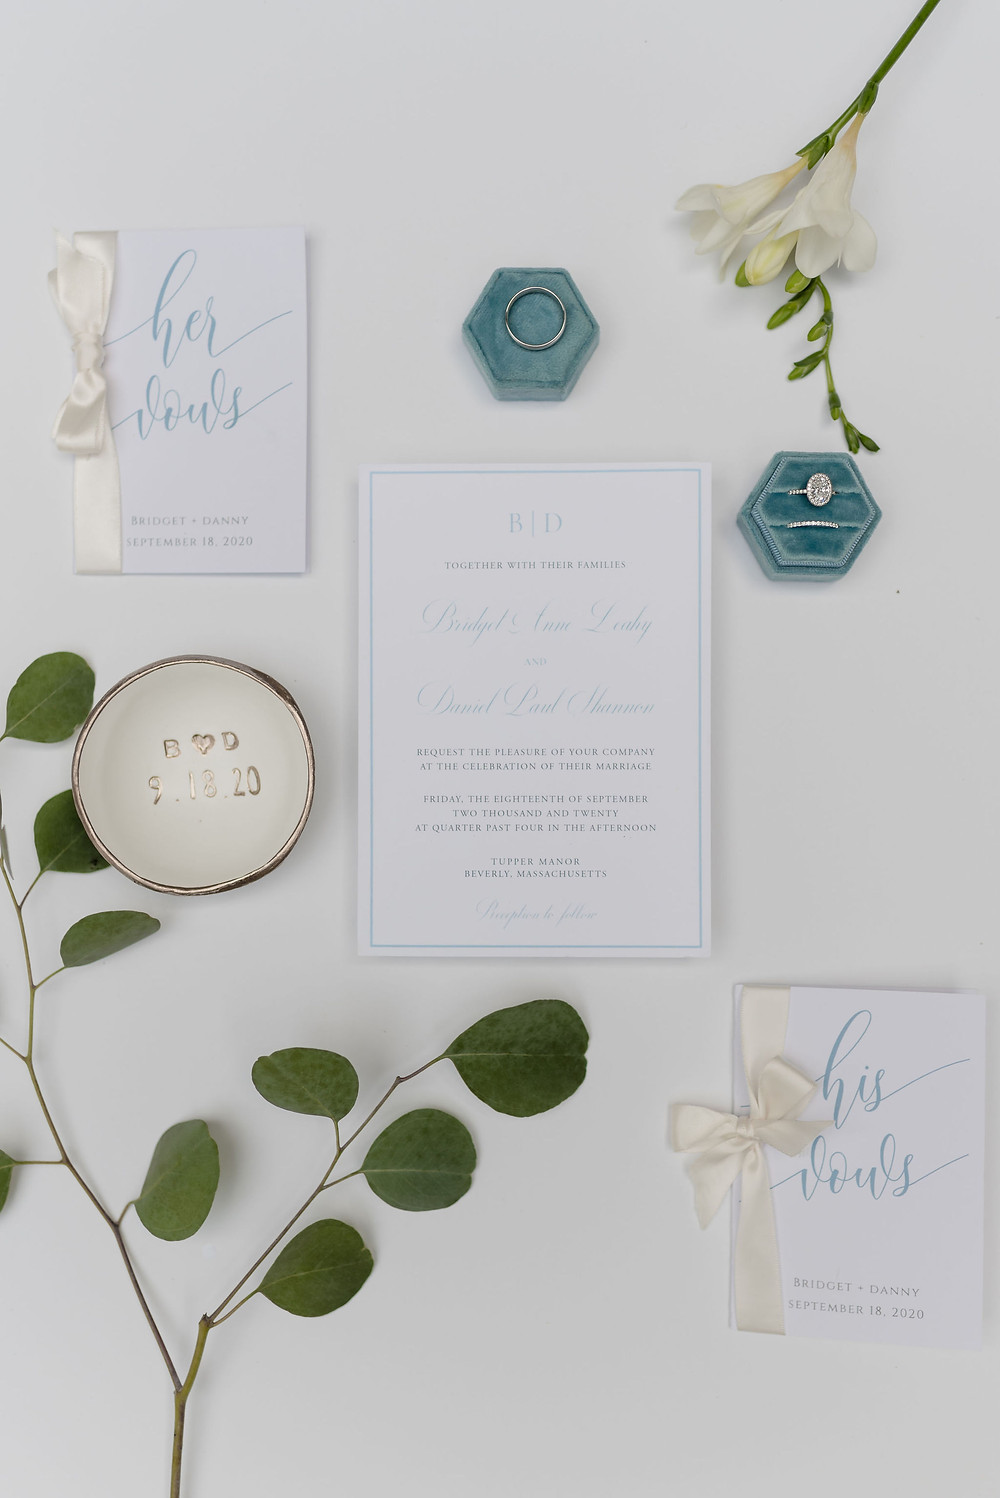 flat lay wedding details with invitations and wedding rings